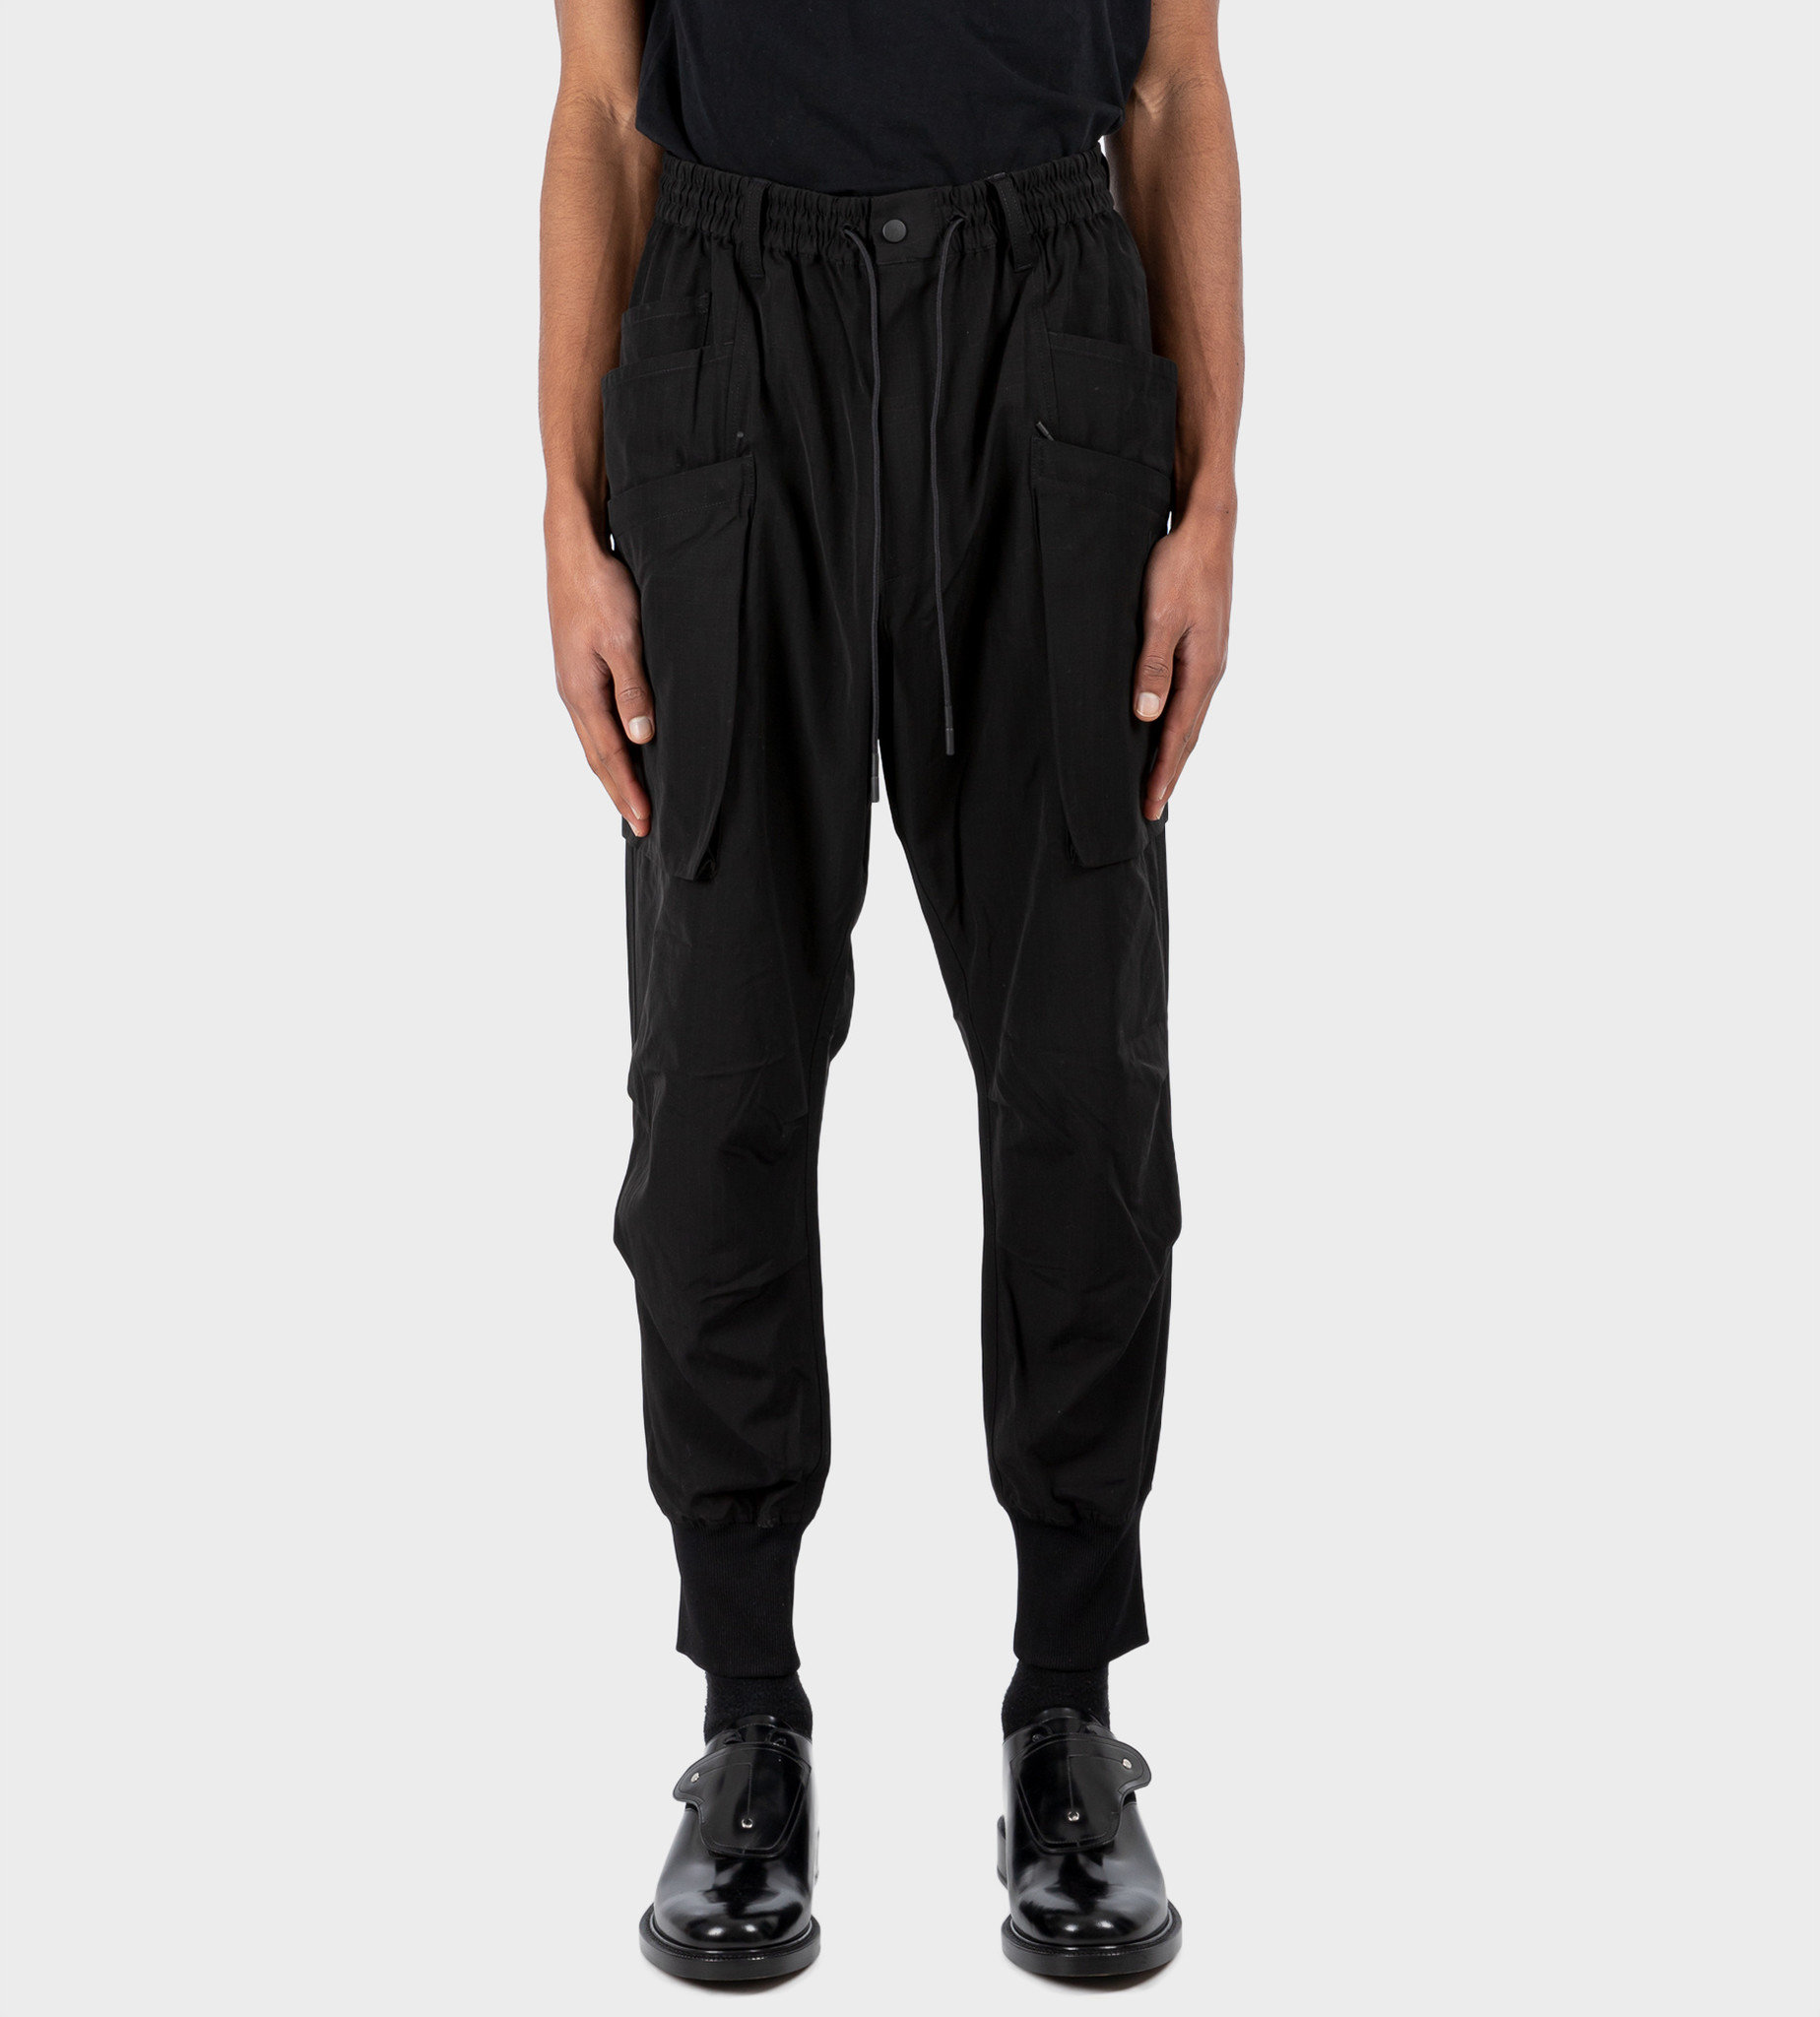 Y3 Light Ripstop Utility Trousers